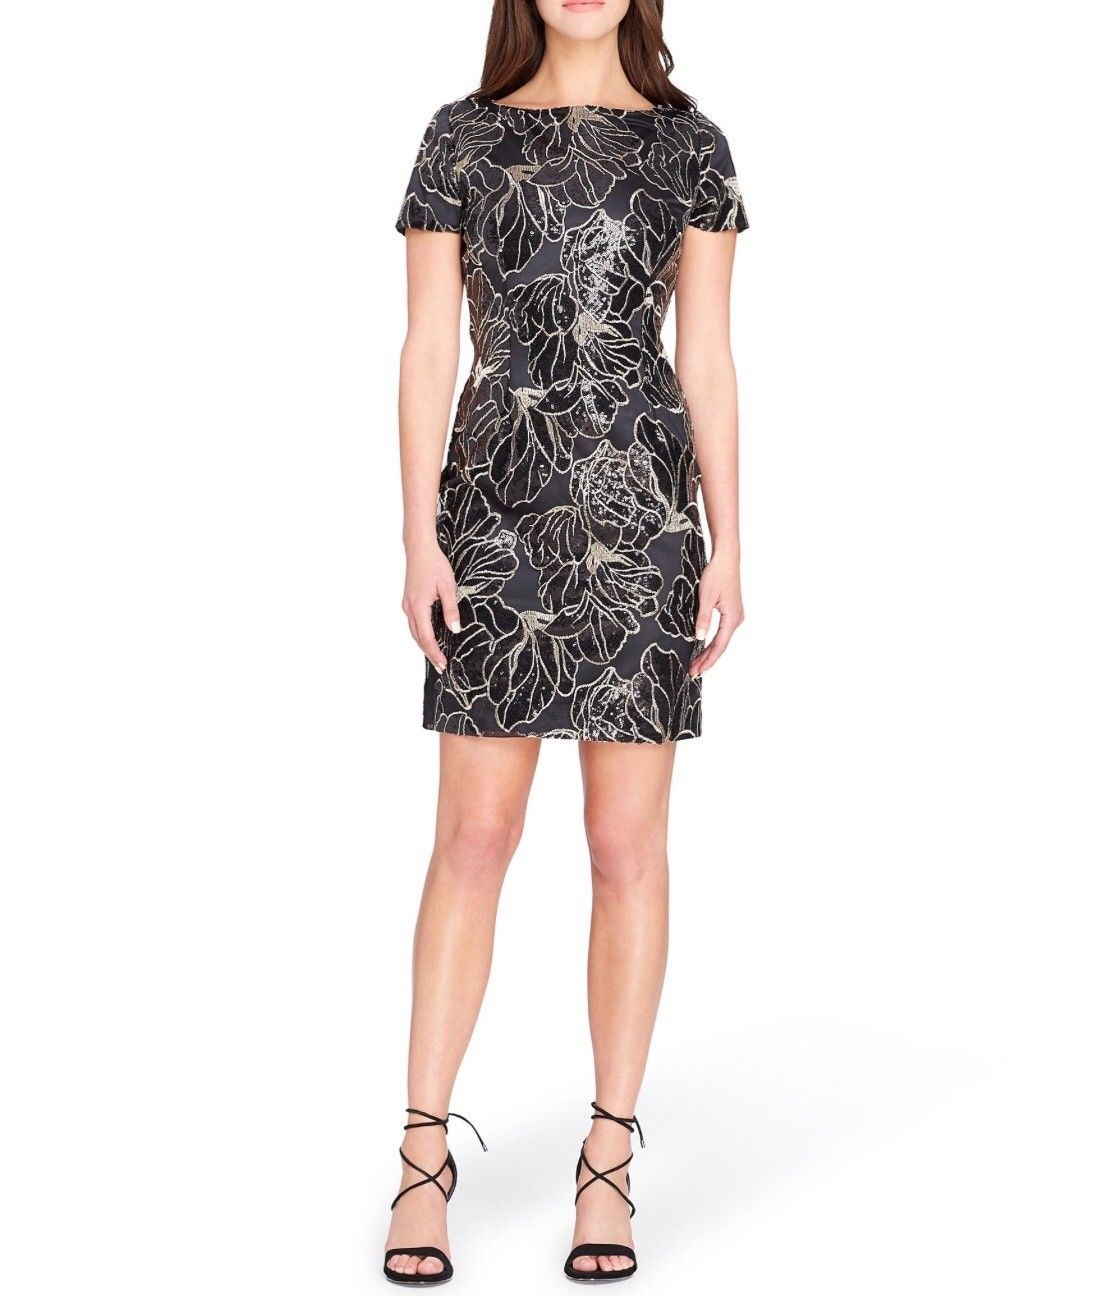 Tahari Asl Sequin Embroidered Sheath Dress Nwt Black And Gold Cocktail Dress Dresses Floral Sheath Dress Sheath Dress [ 1296 x 1115 Pixel ]